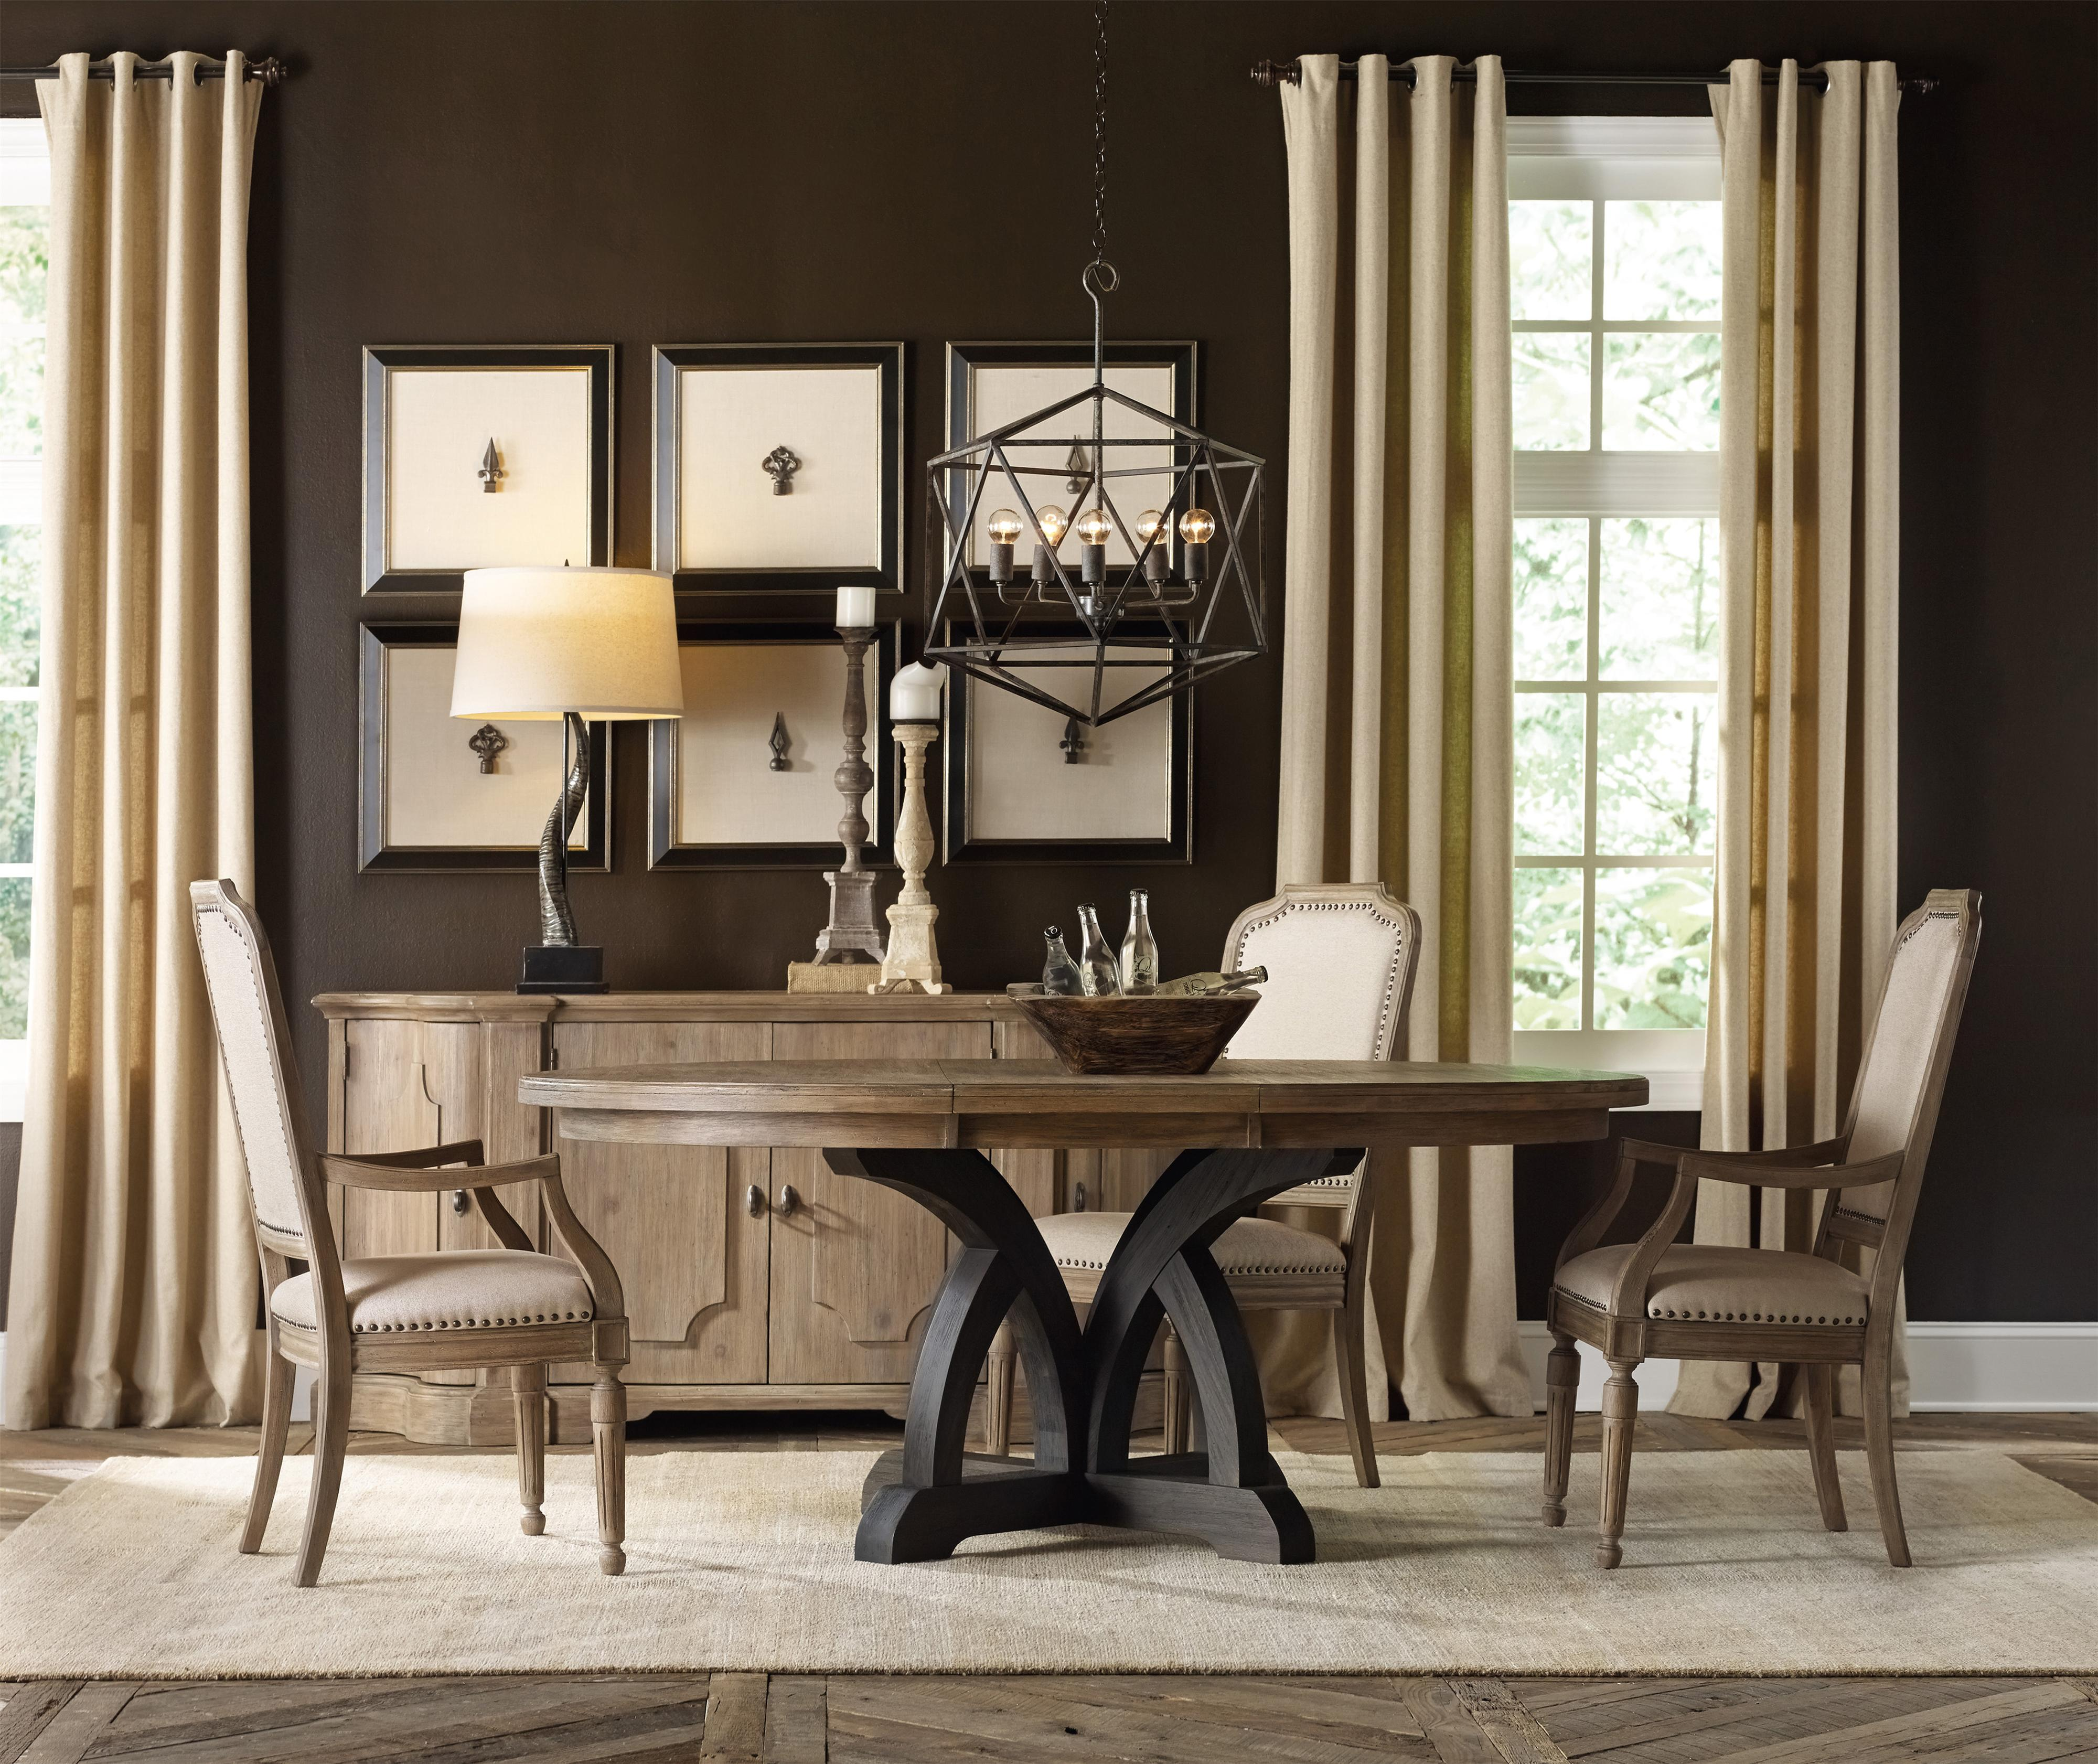 Hooker Furniture Corsica Round Dining Table with 1 18 Inch  : products2Fhookerfurniture2Fcolor2Fcorsica2051805280 75213 b3 from www.belfortfurniture.com size 4000 x 3363 jpeg 1417kB